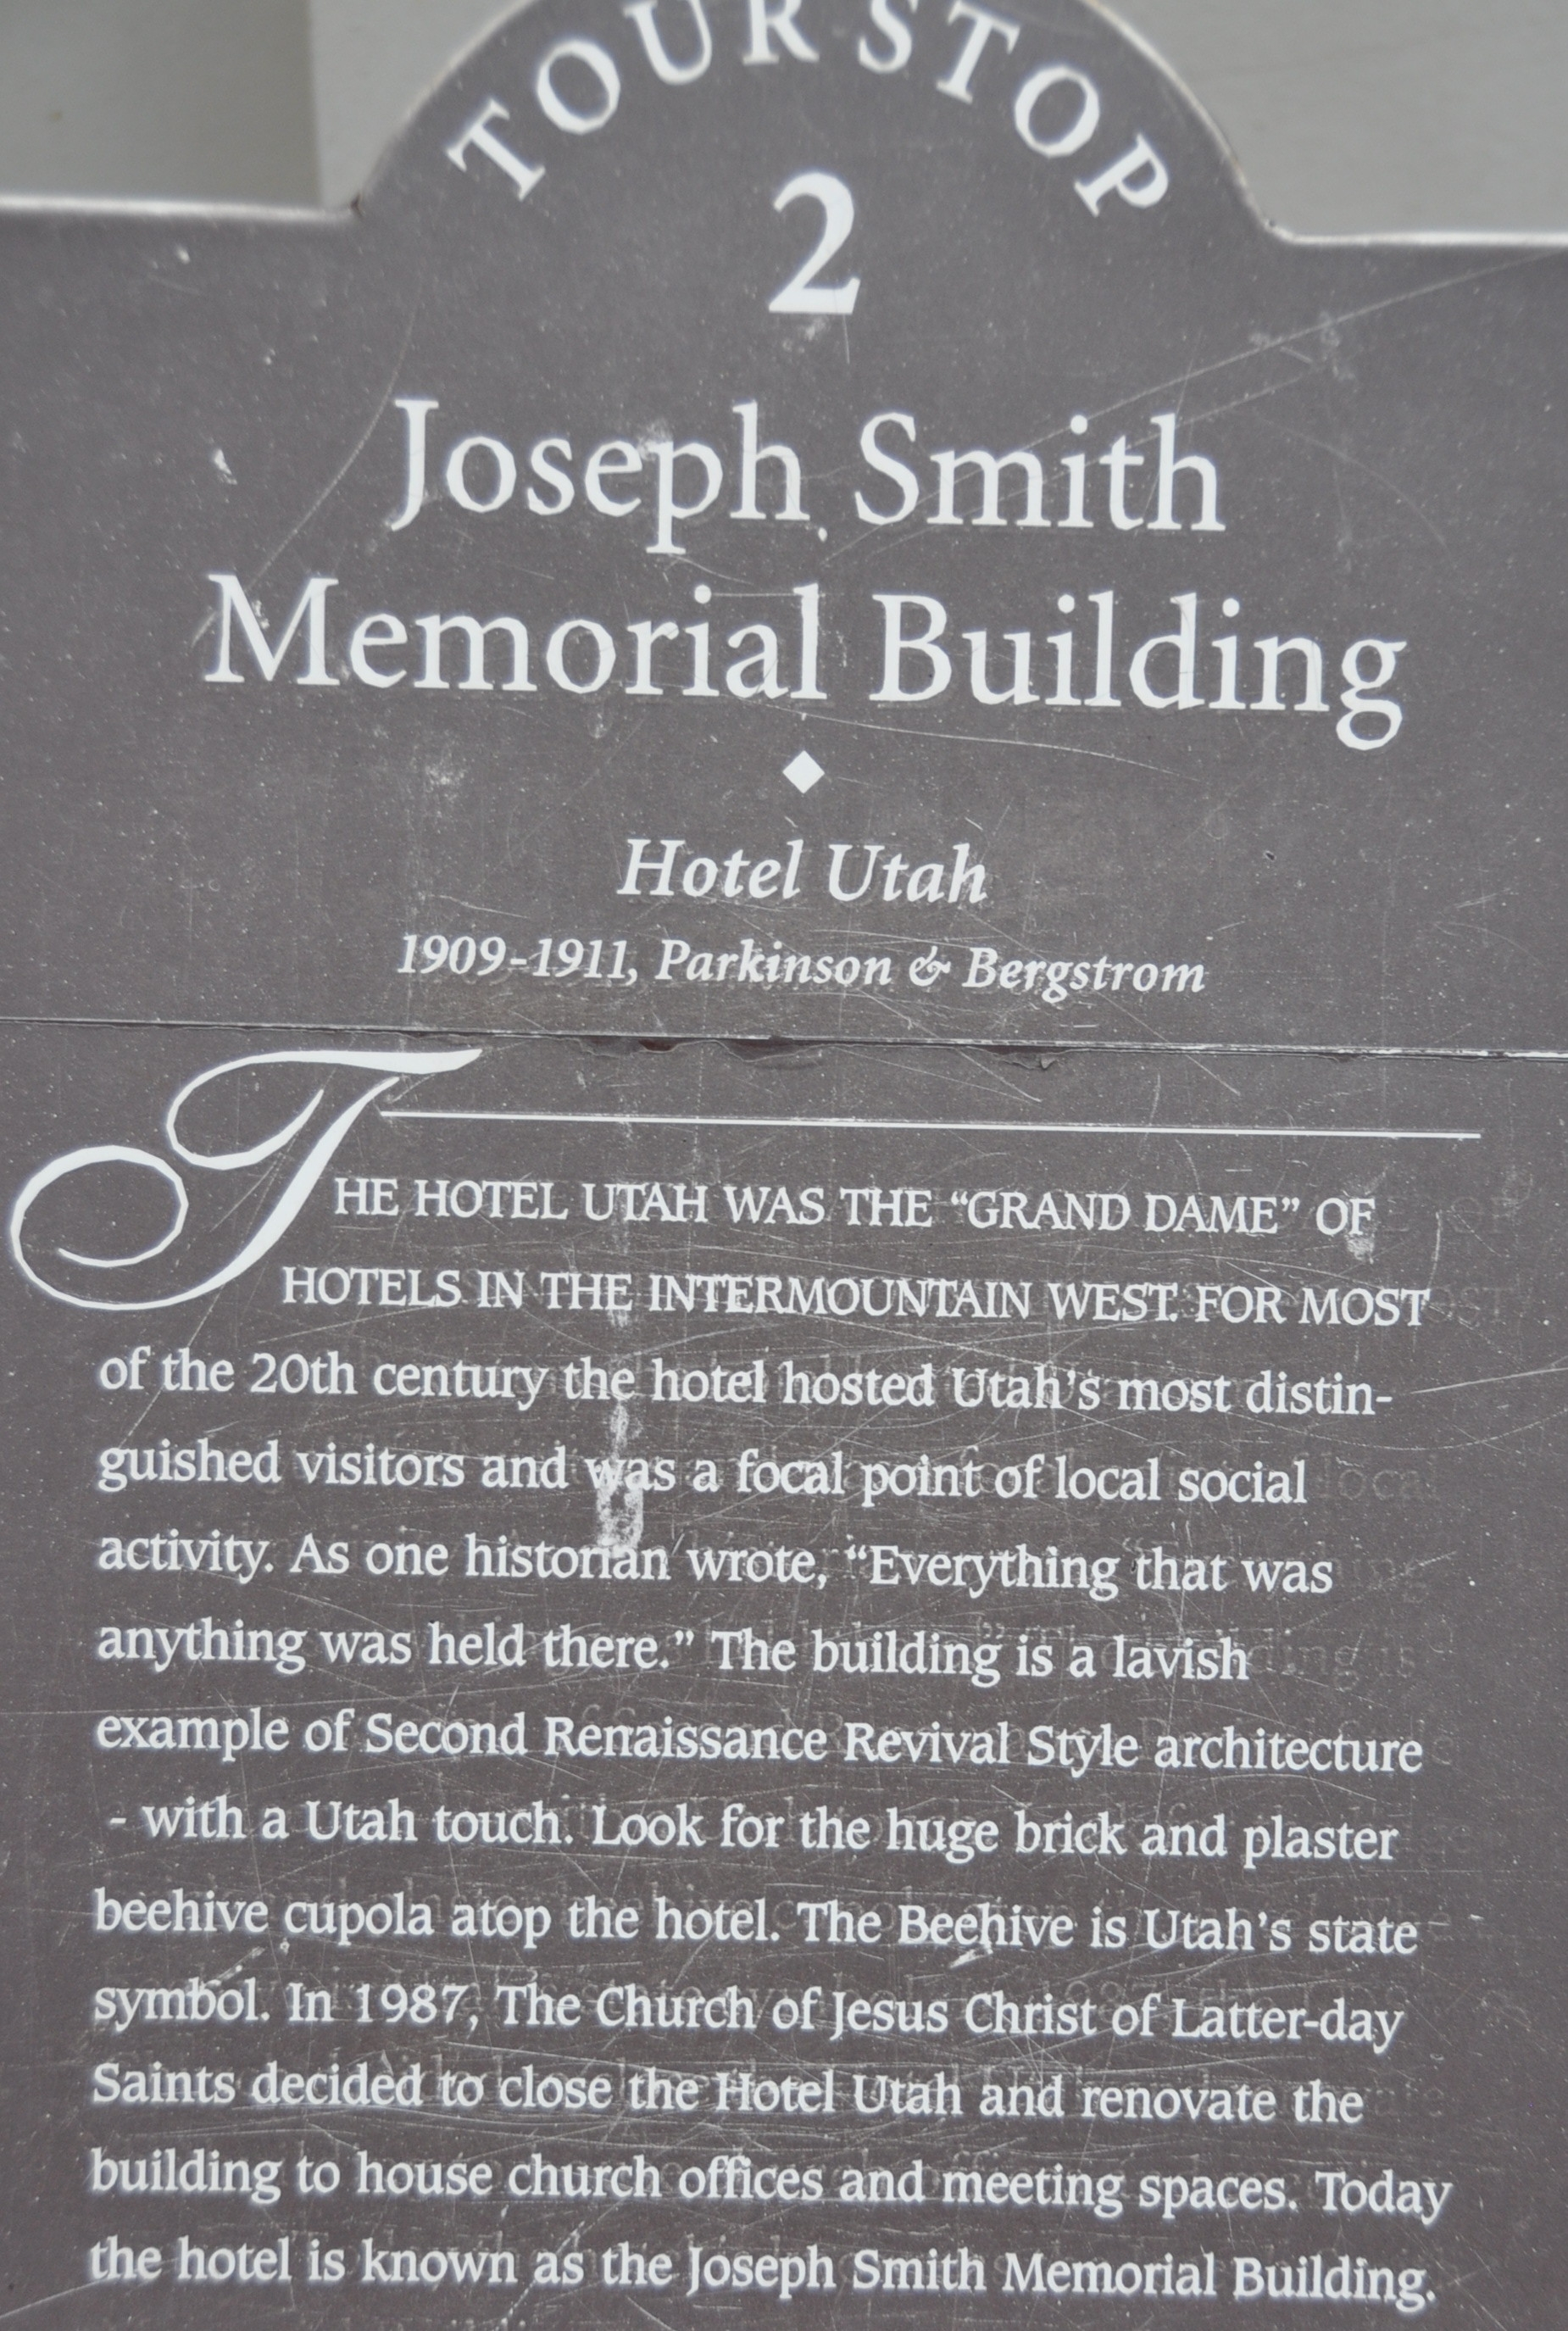 Joseph Smith Memorial Building Marker